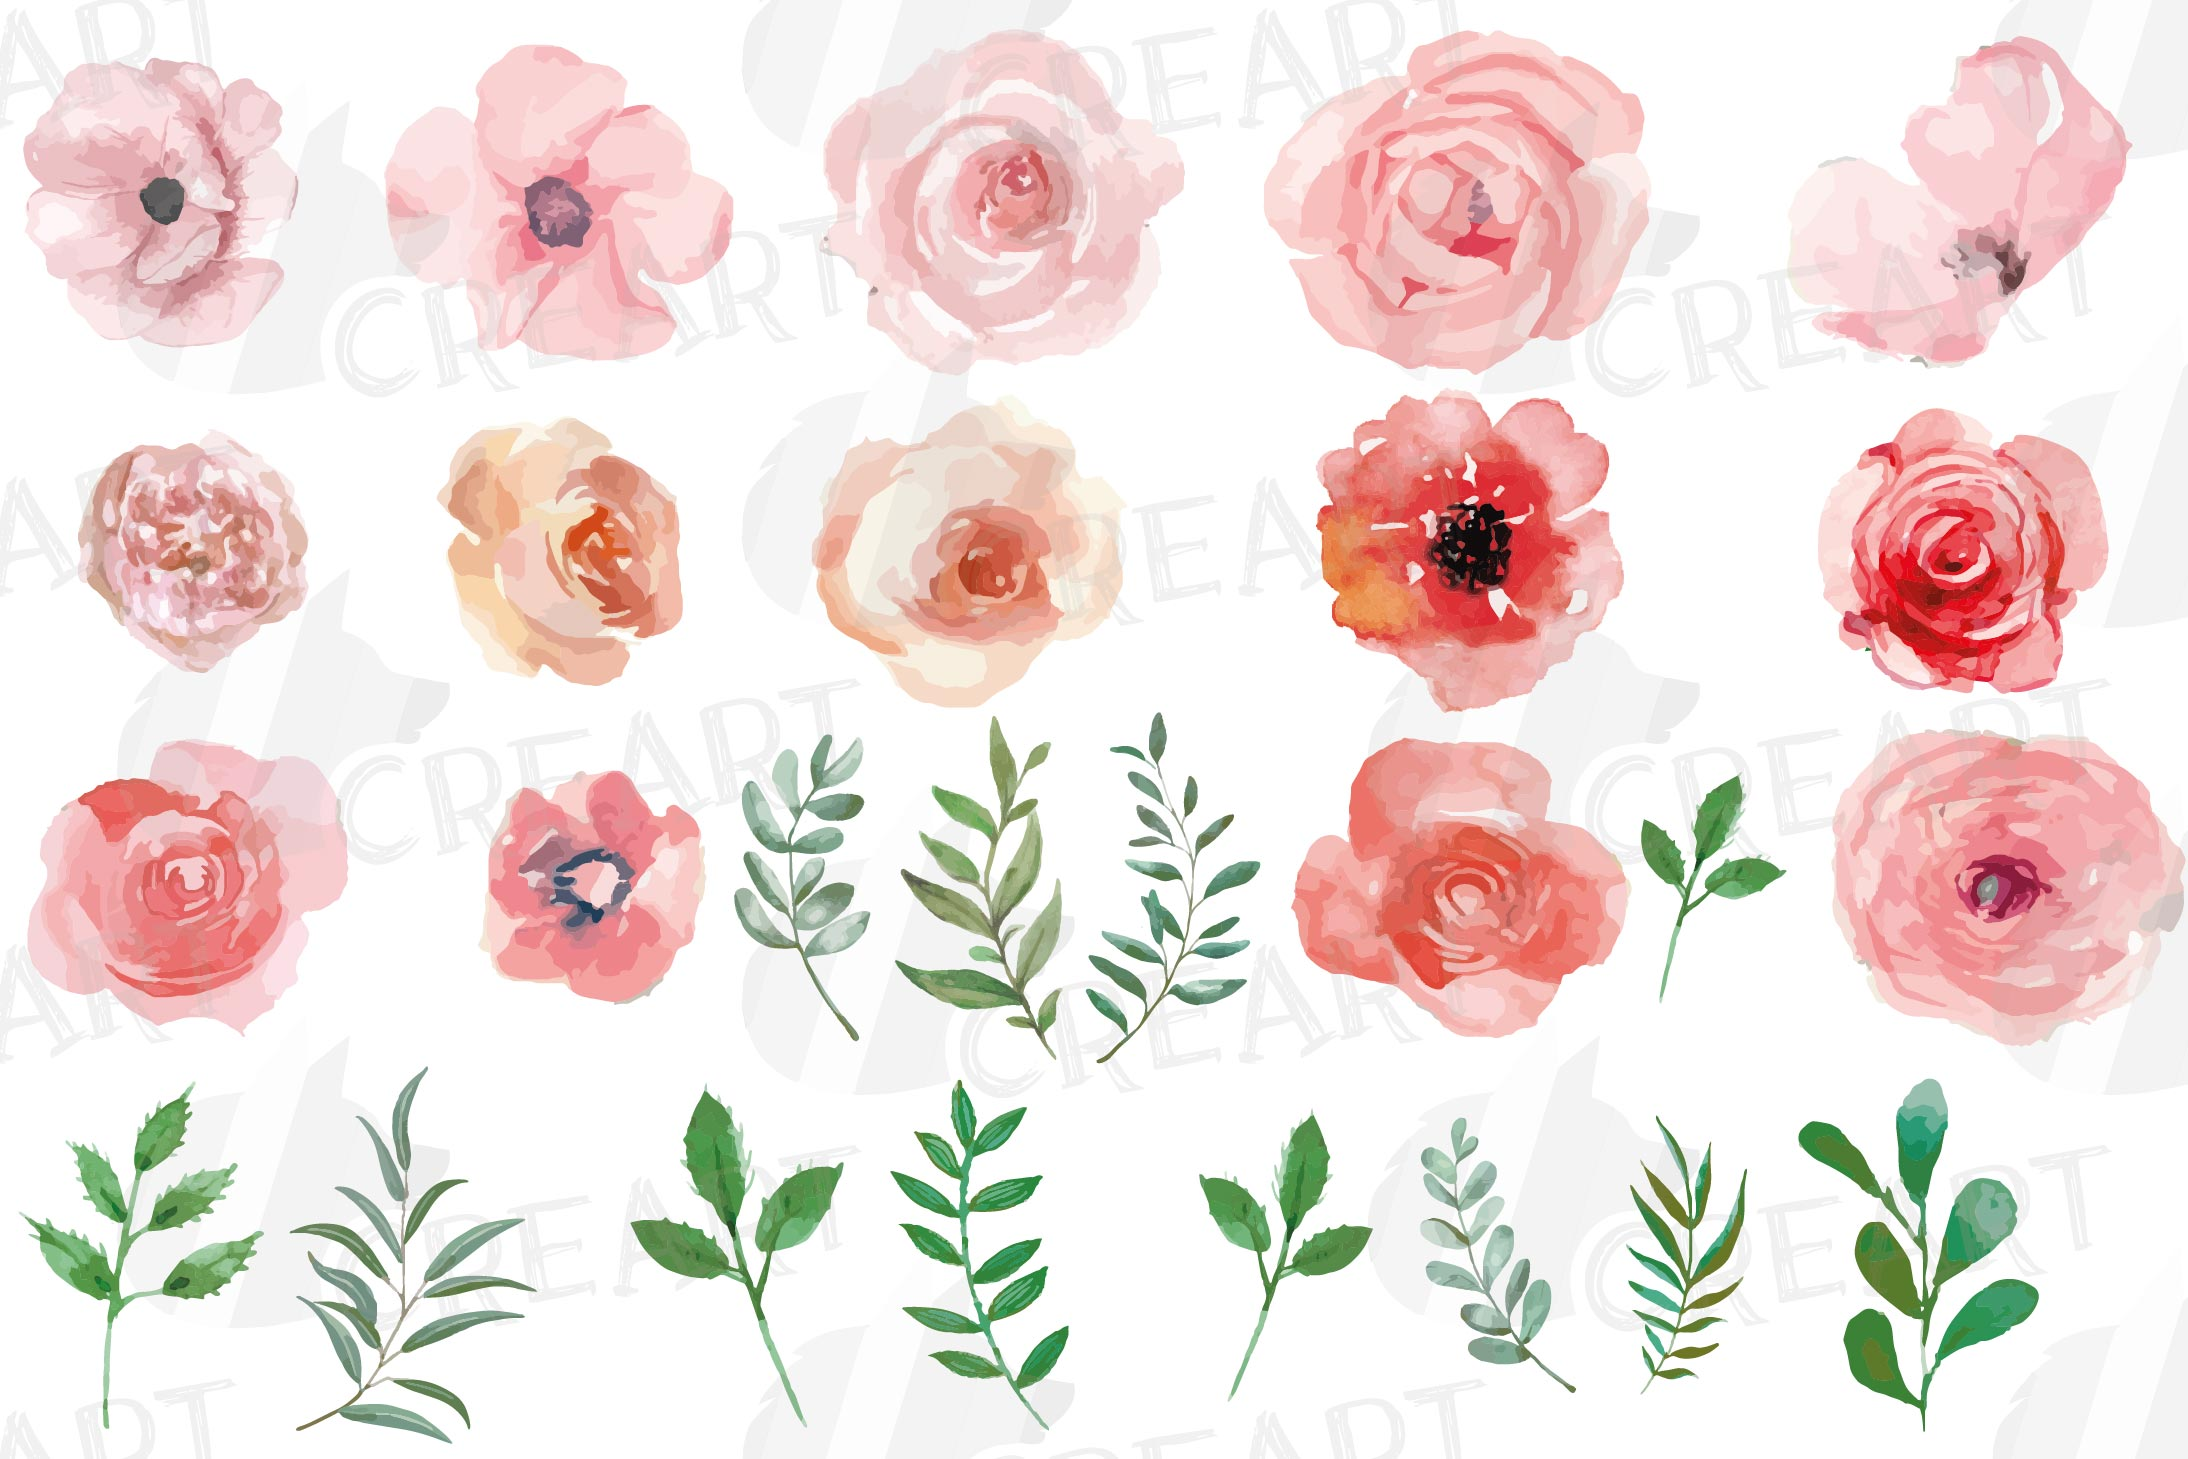 Blush watercolor floral wedding clip art, pink flowers leafs example image 4